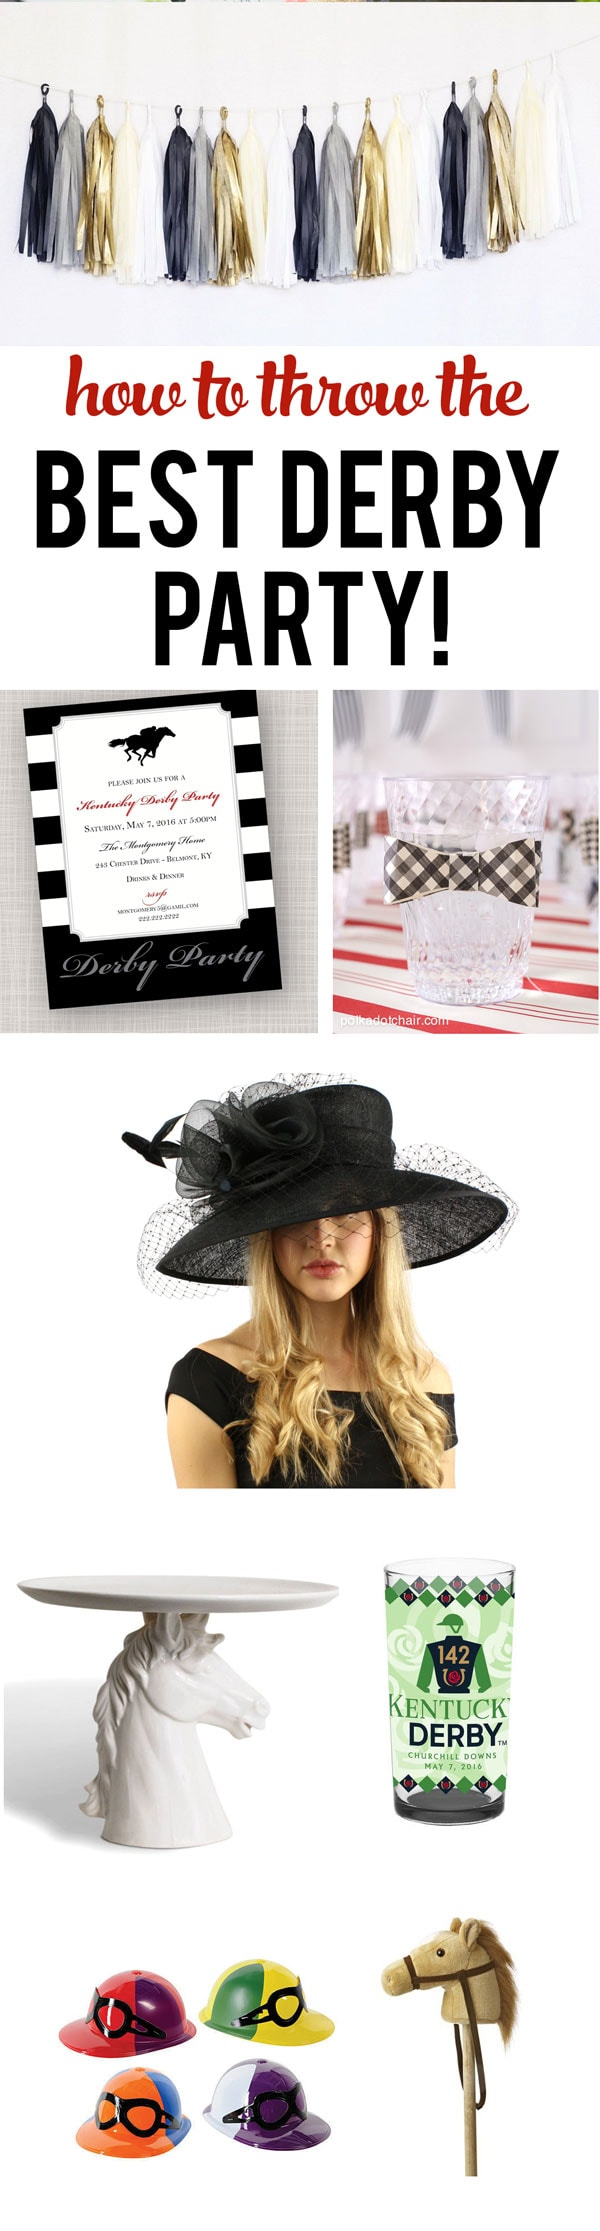 How to have THE BEST Kentucky Derby Party EVER!